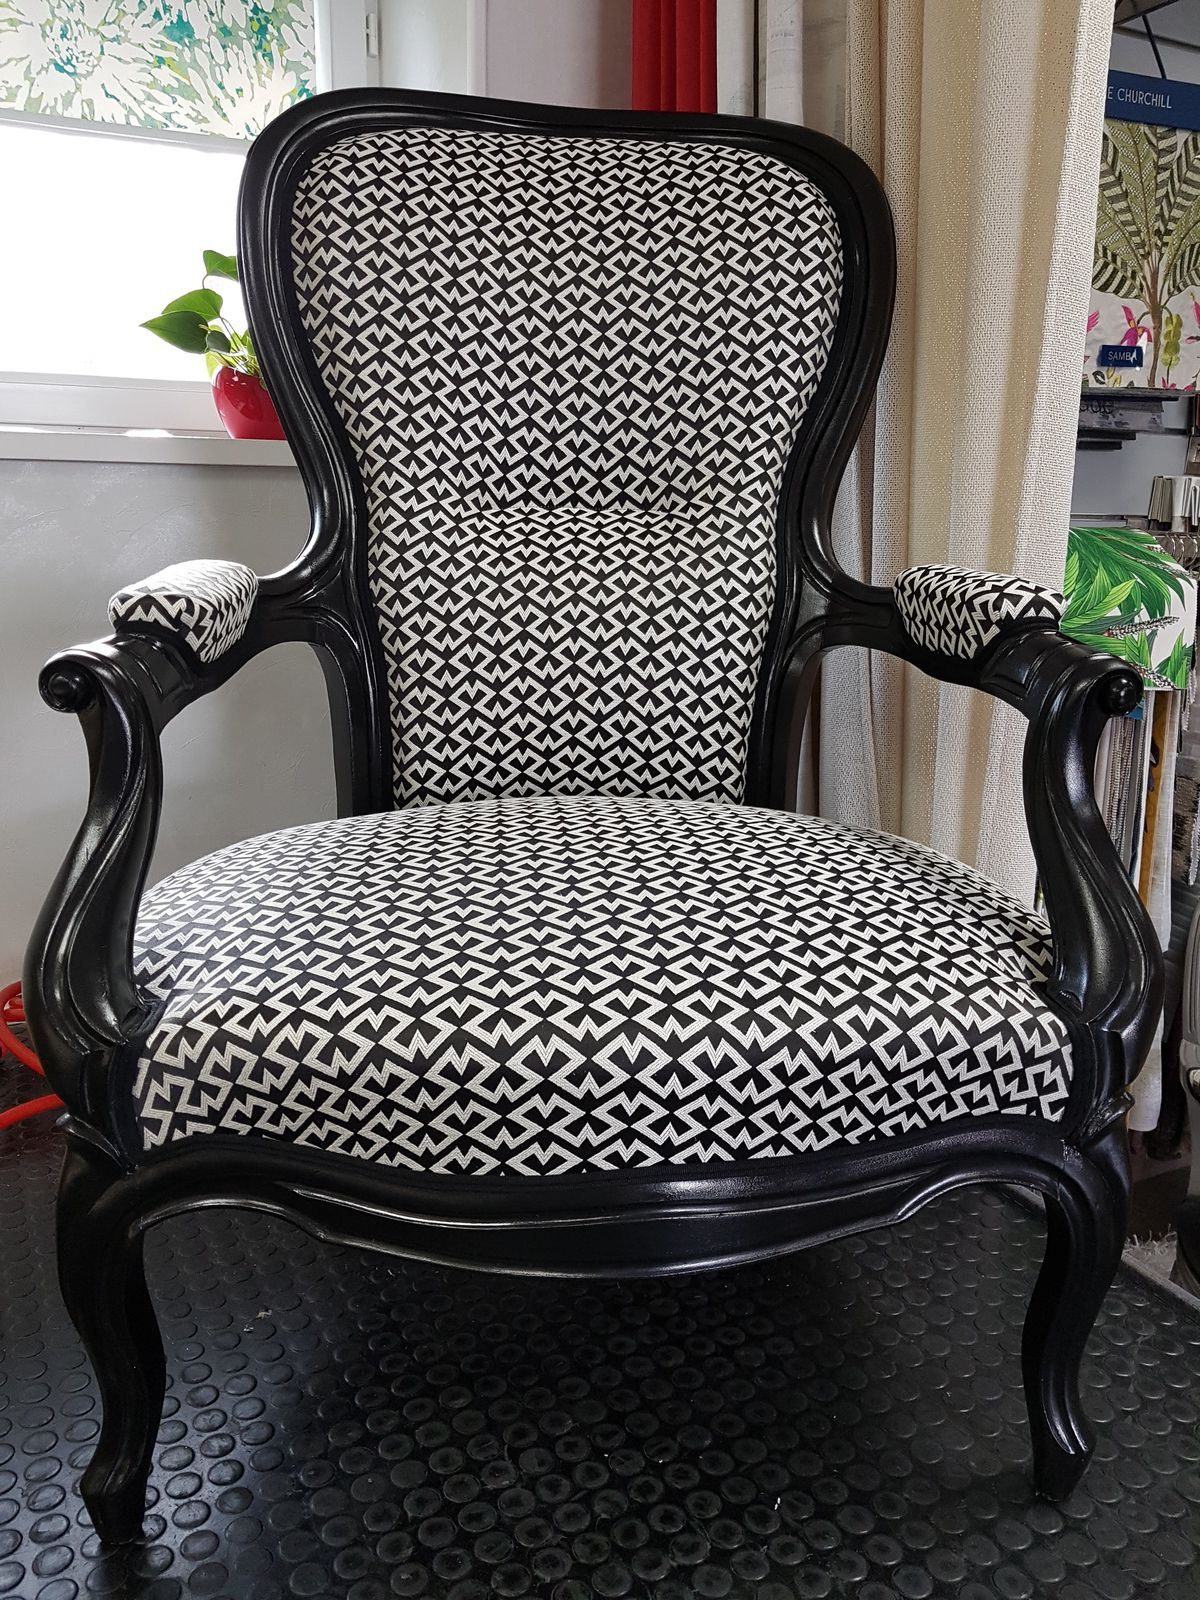 réfection de fauteuil ARABESQUE THIERS tapissier décorateur 63 puy de dome thiers